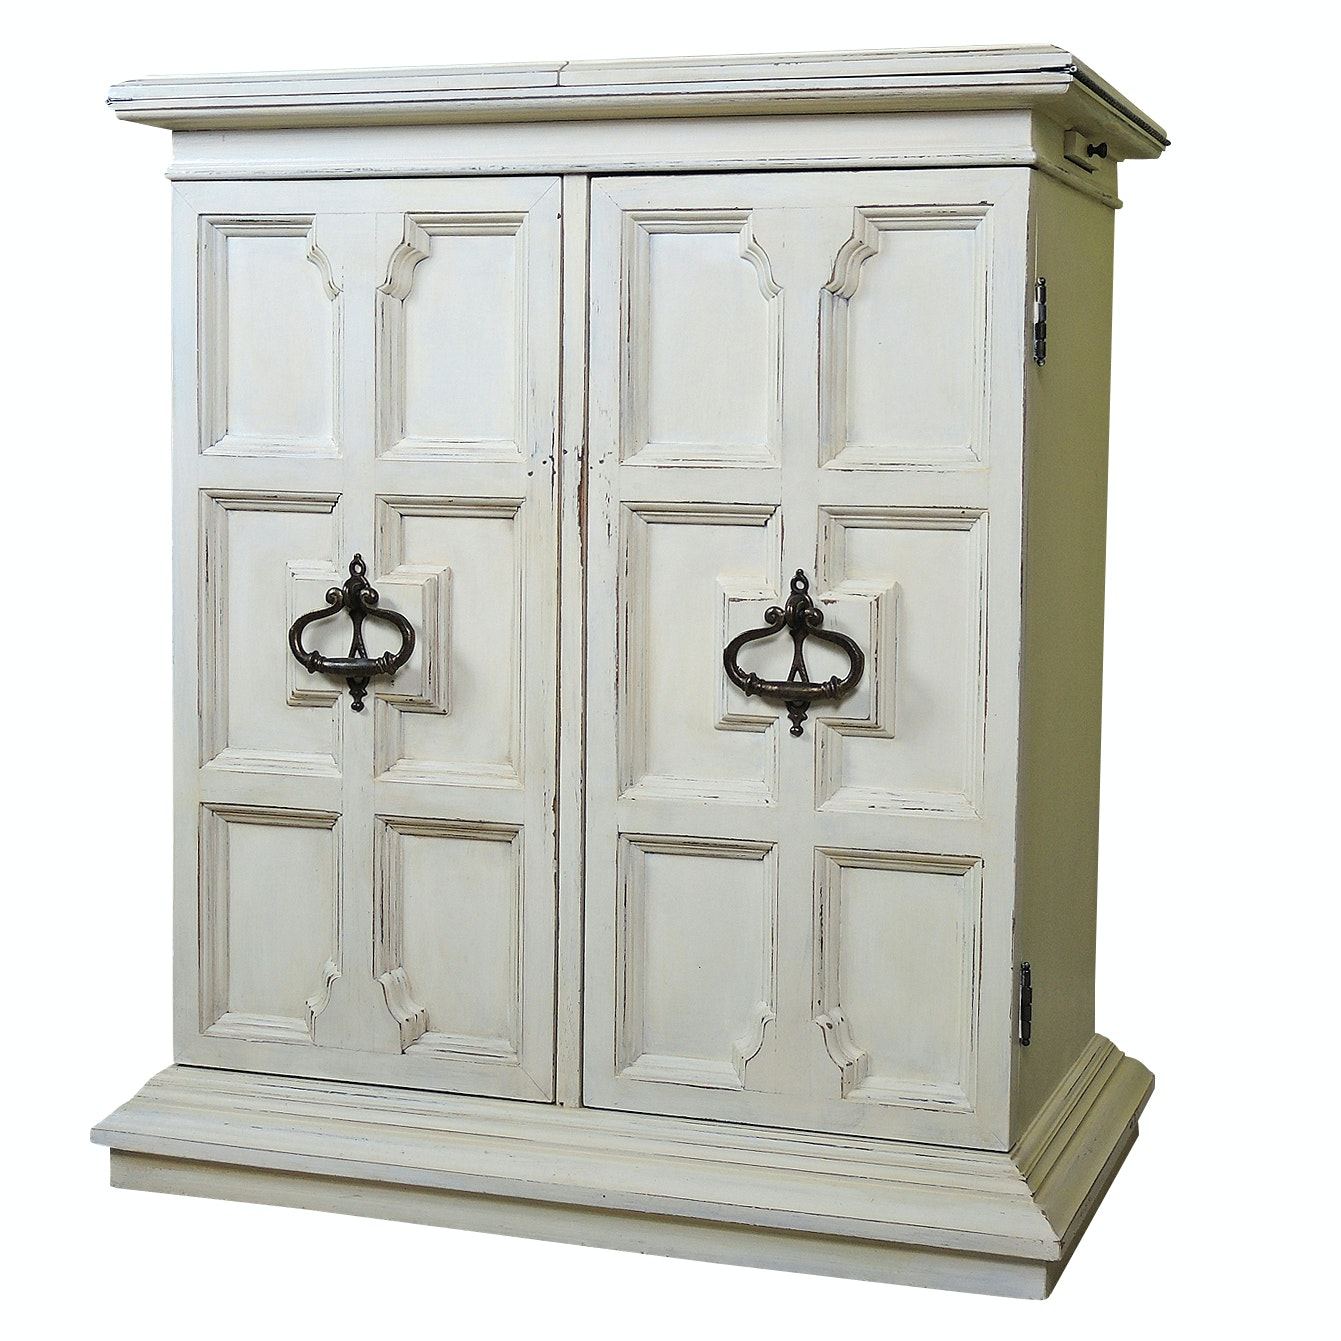 Contemporary Painted Wood Bar Cabinet by Heritage